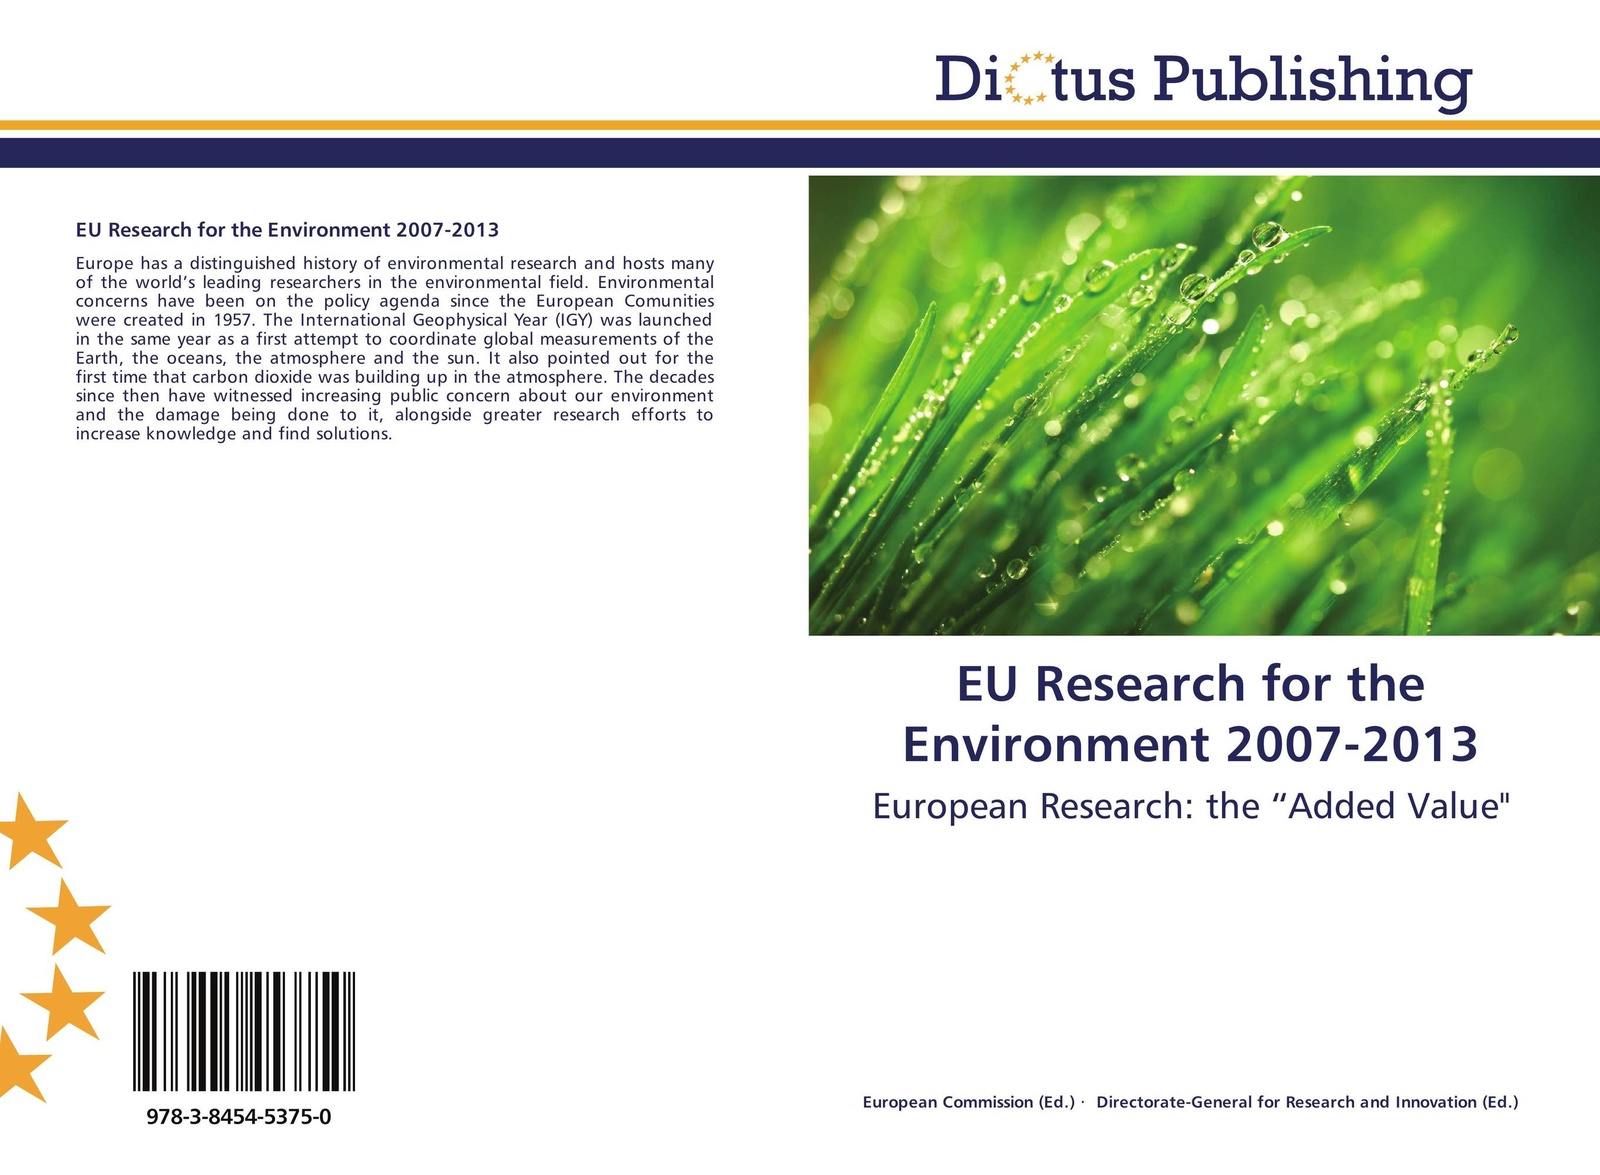 European Commission European Commission and Directorate-General for Research and Innovation Directorate-General for Research and Innovation EU Research for the Environment 2007-2013 wendisch manfred airborne measurements for environmental research methods and instruments